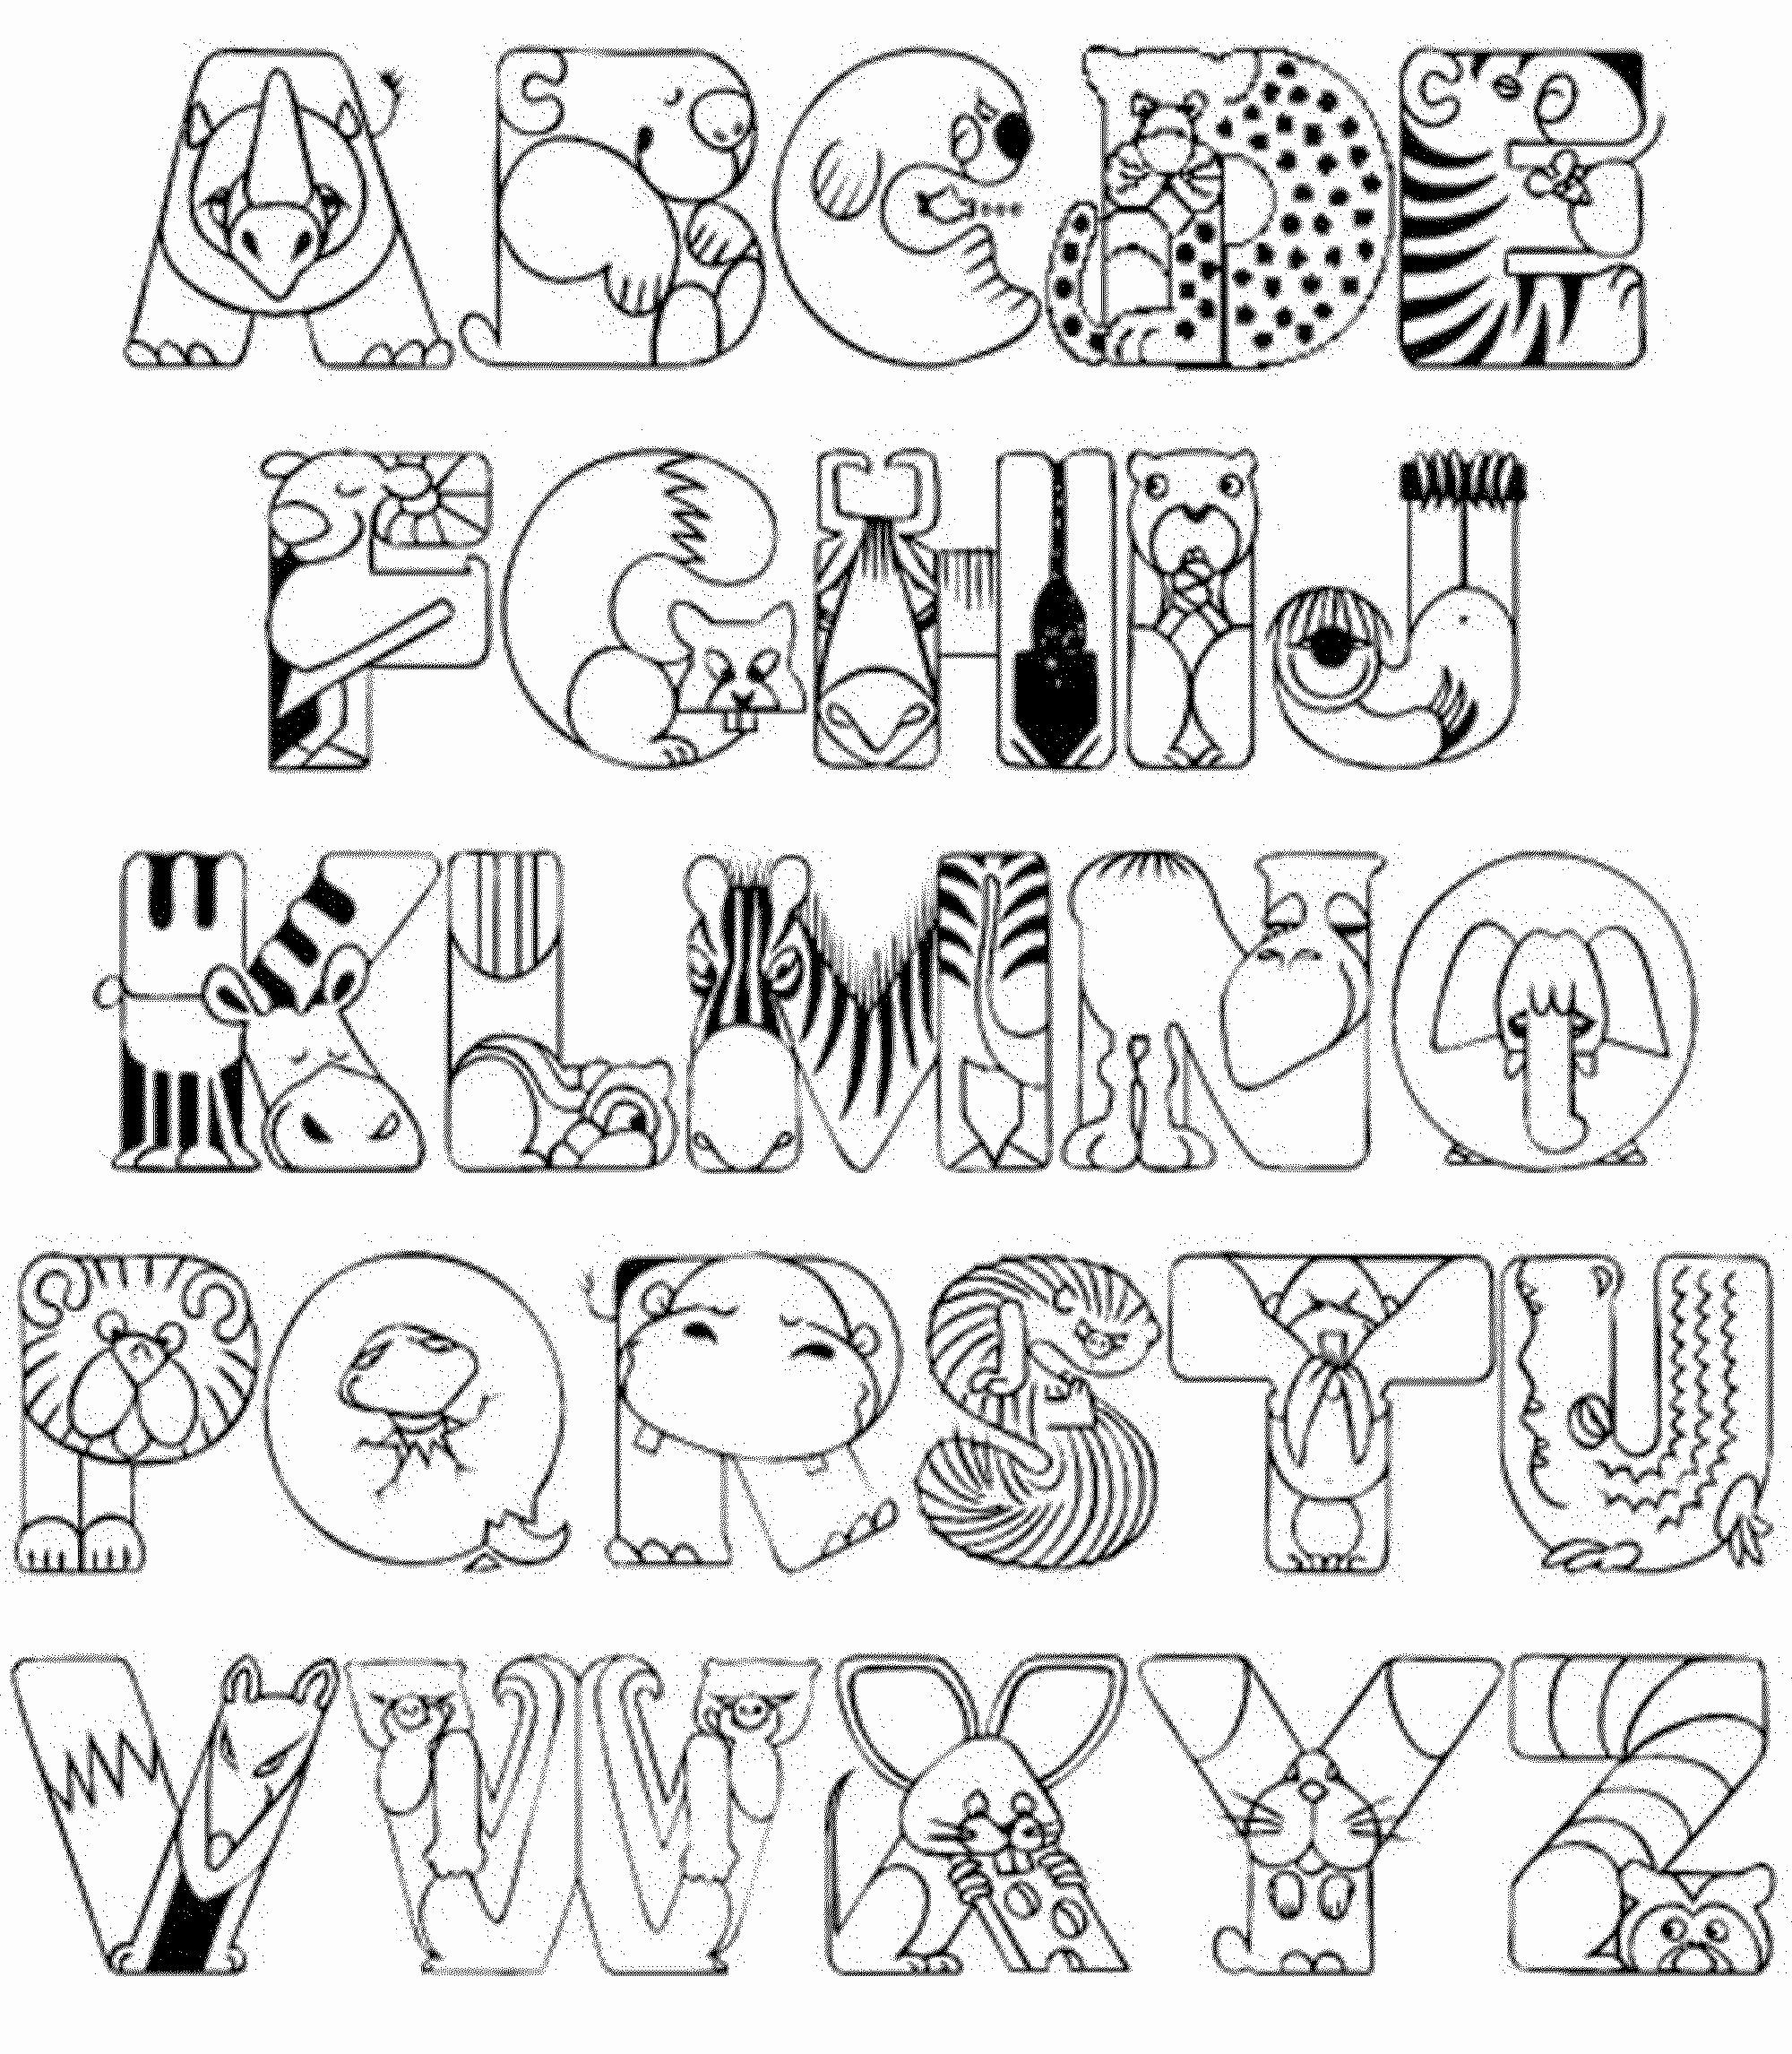 Halloween Math Coloring Sheets New Coloring Ideas Coloring For Kindergarten Pages Summer Kindergarten Coloring Pages Abc Coloring Pages Abc Coloring